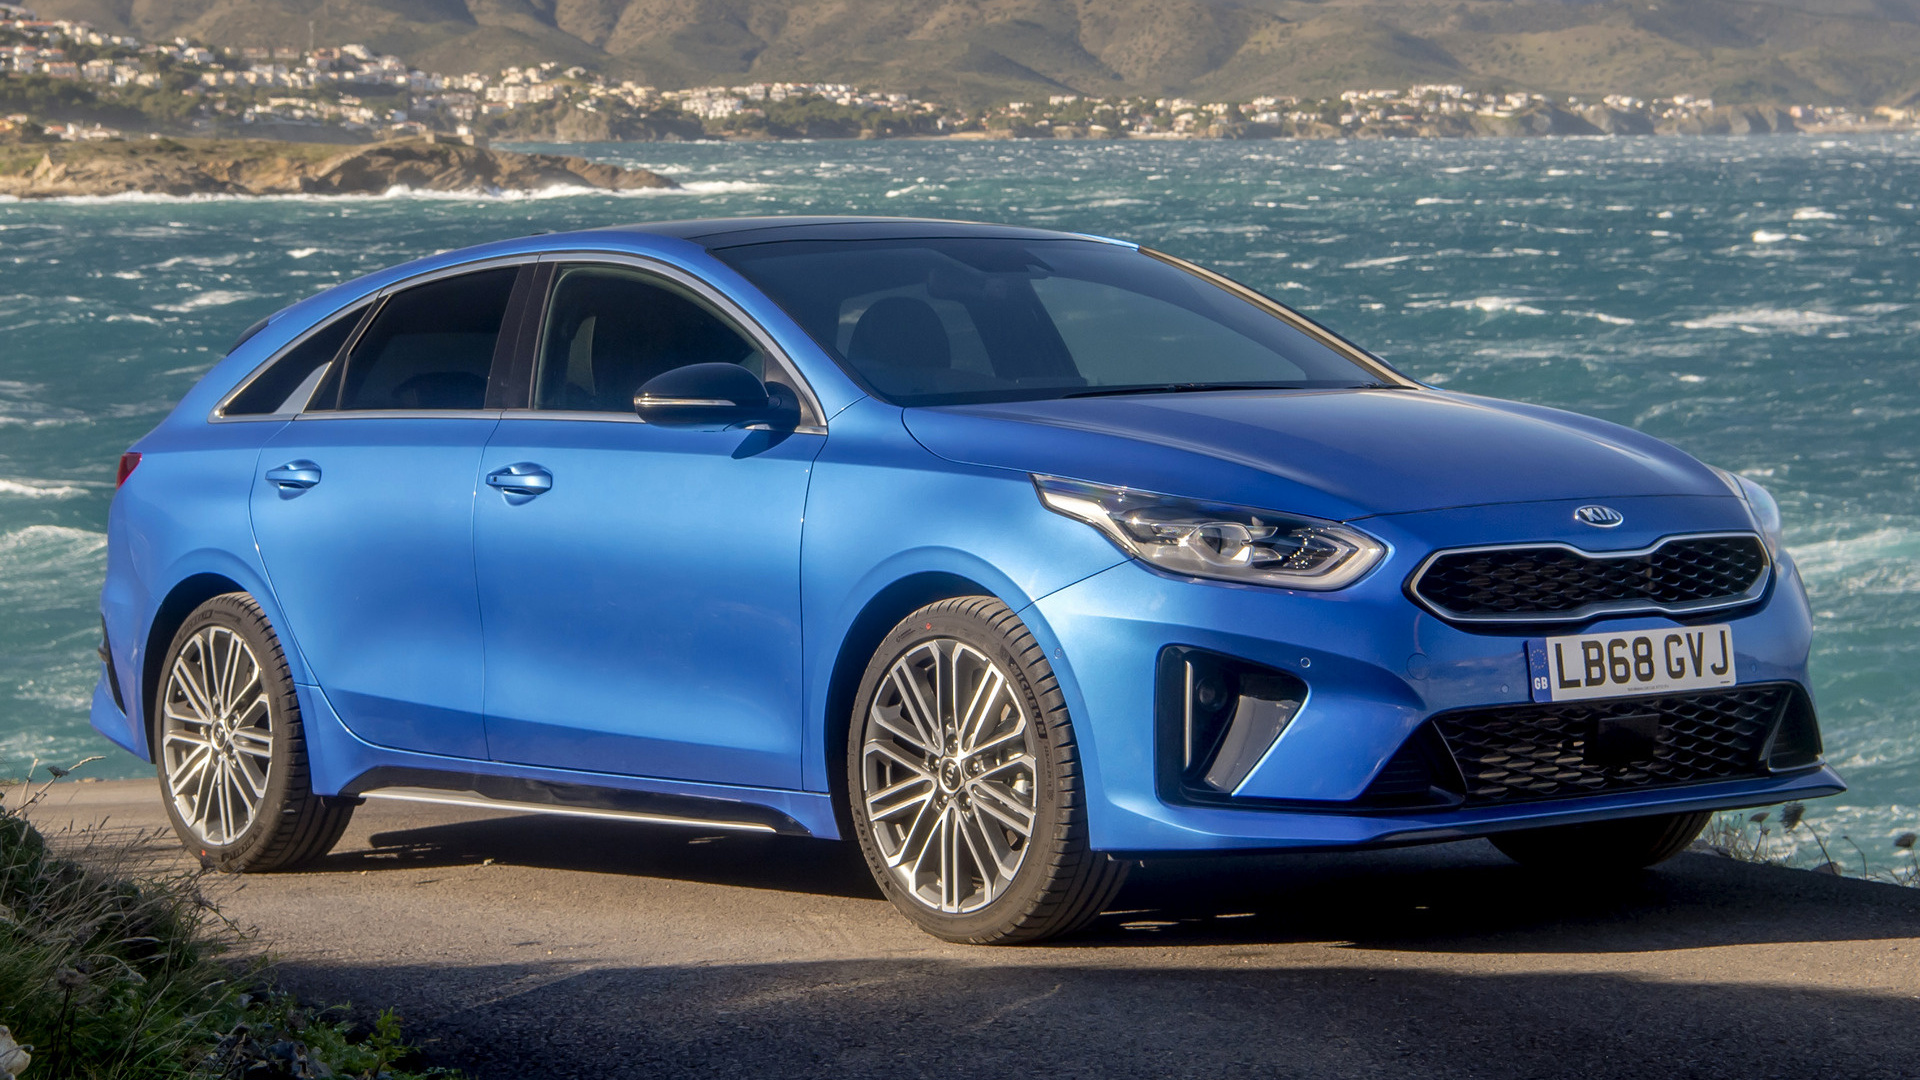 2019 Kia ProCeed GT Line (UK) - Wallpapers and HD Images ...